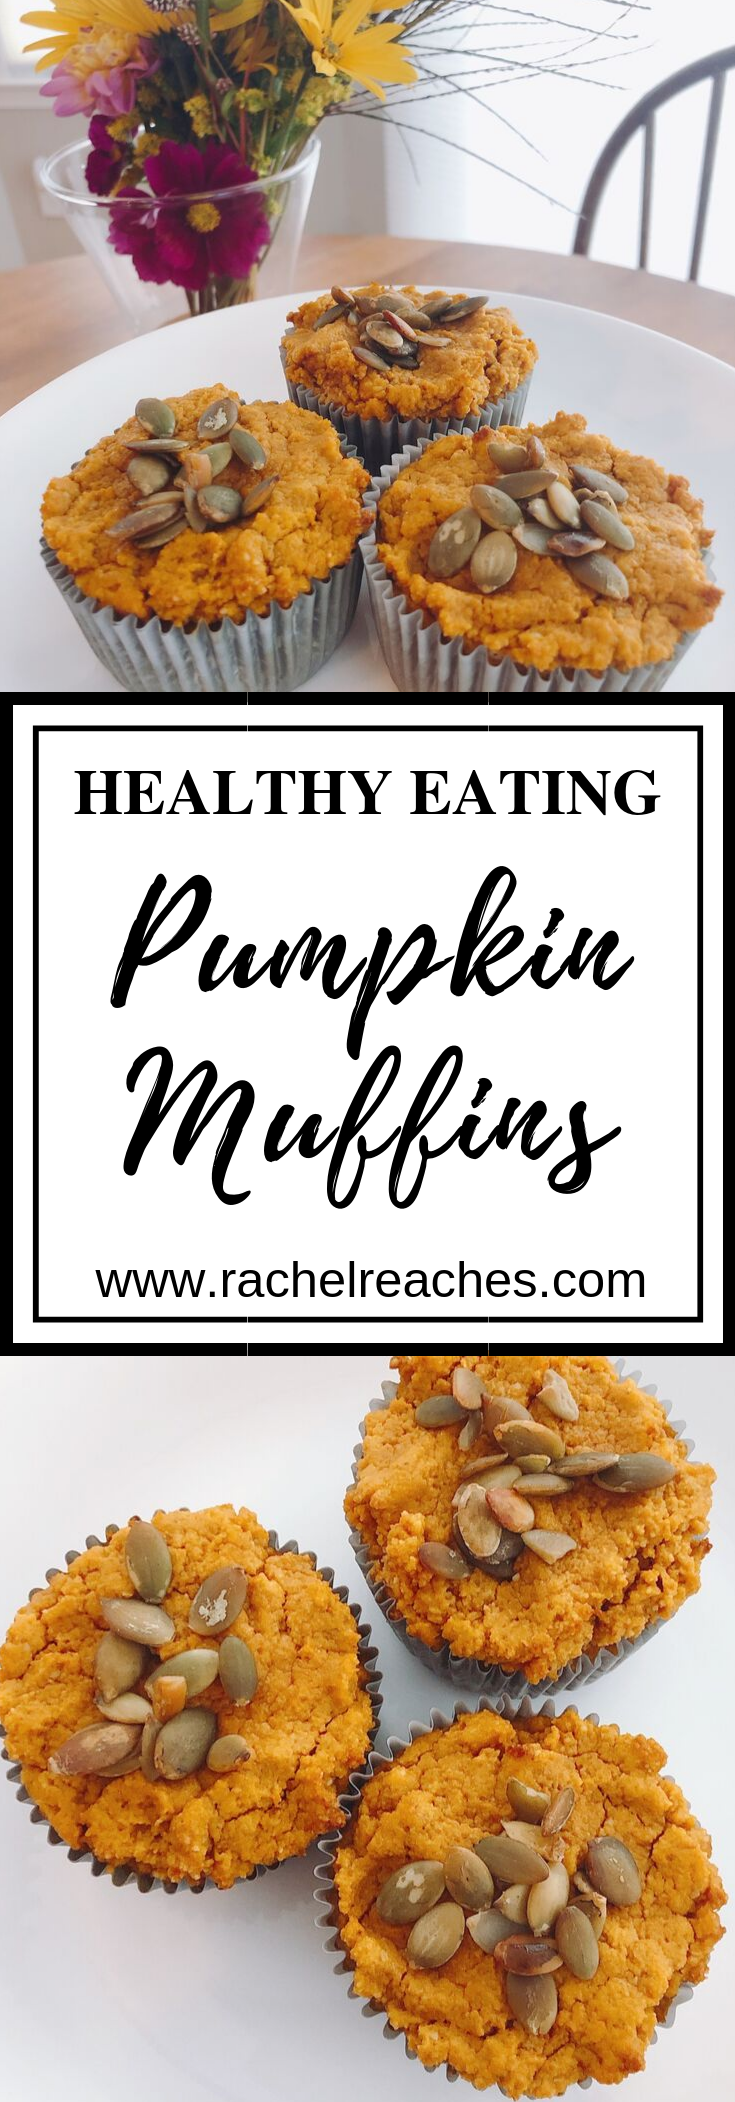 Pumpkin Muffins - Healthy Eating.png